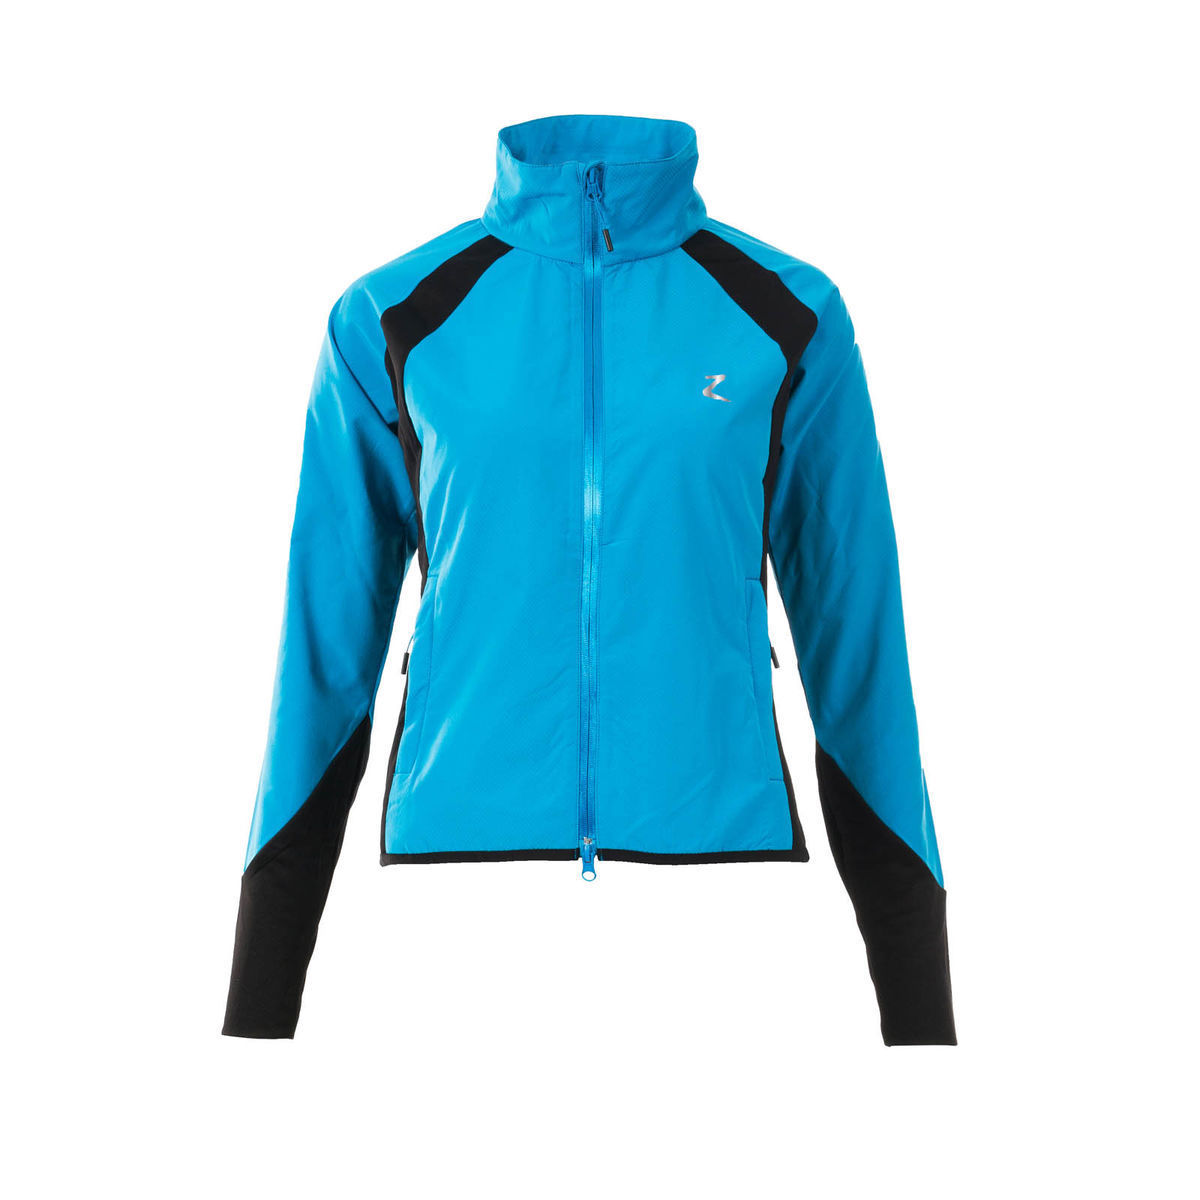 Horze Kendall Functional Jacket PRB / Blue UK 8